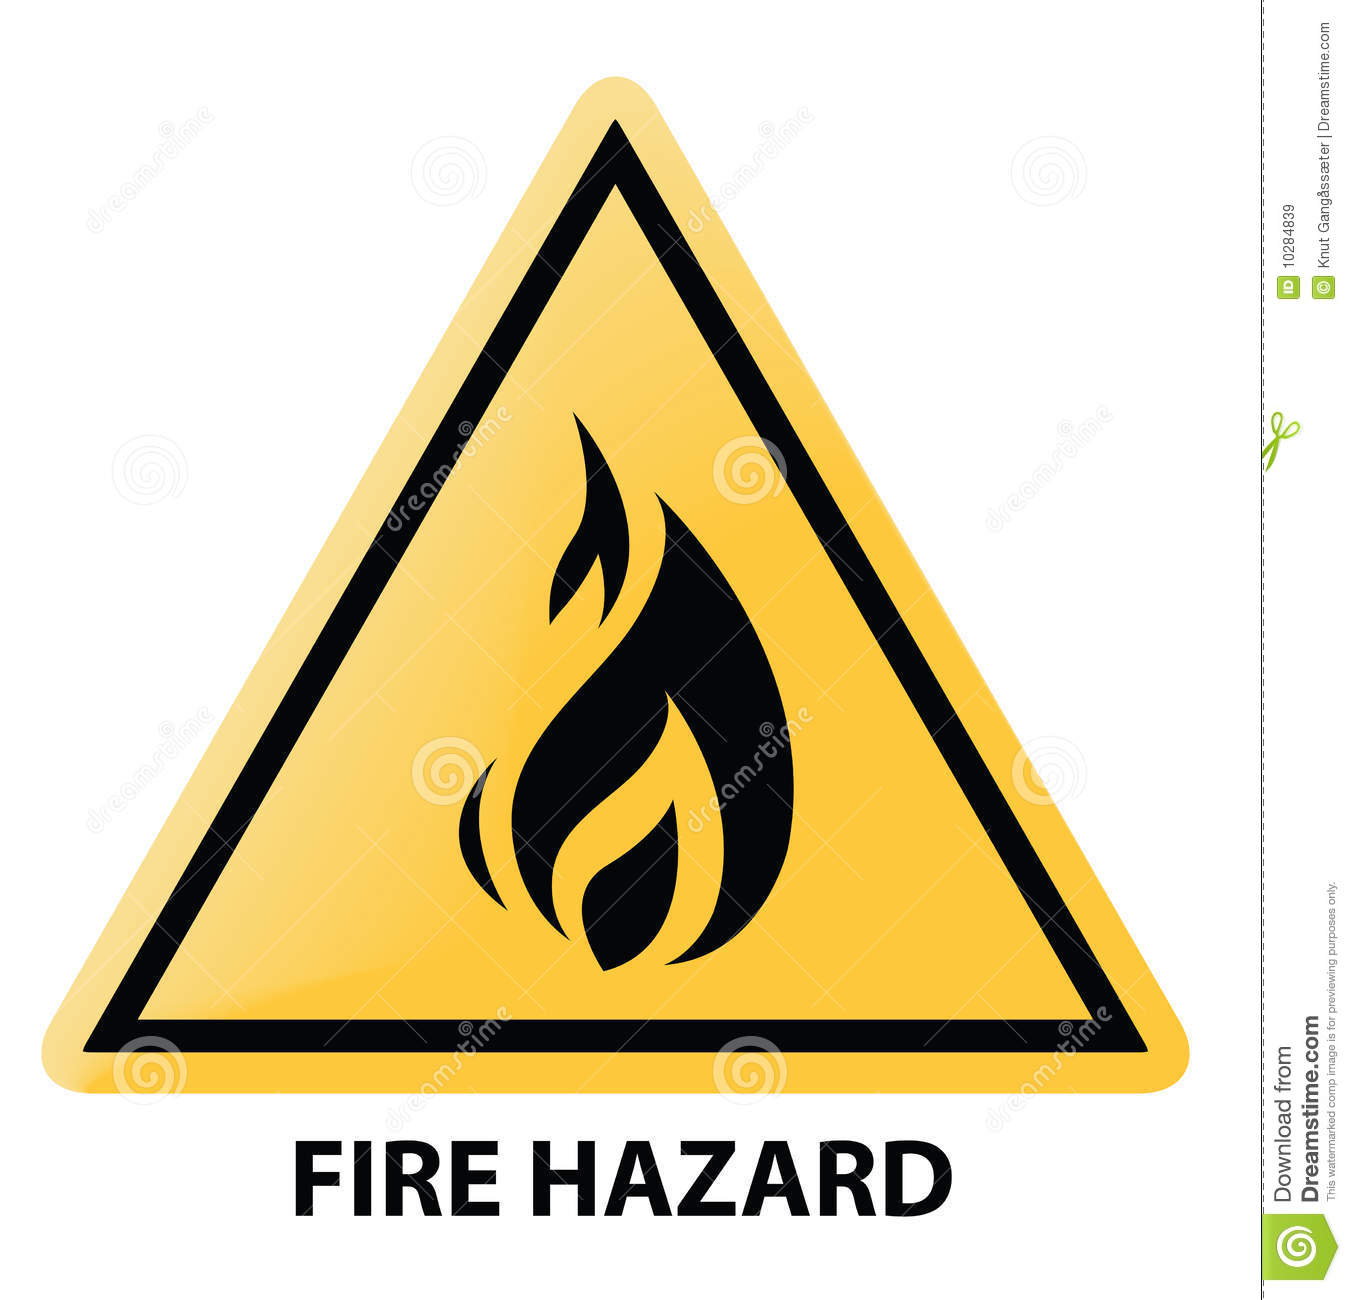 fire hazard royalty free stock images image 10284839